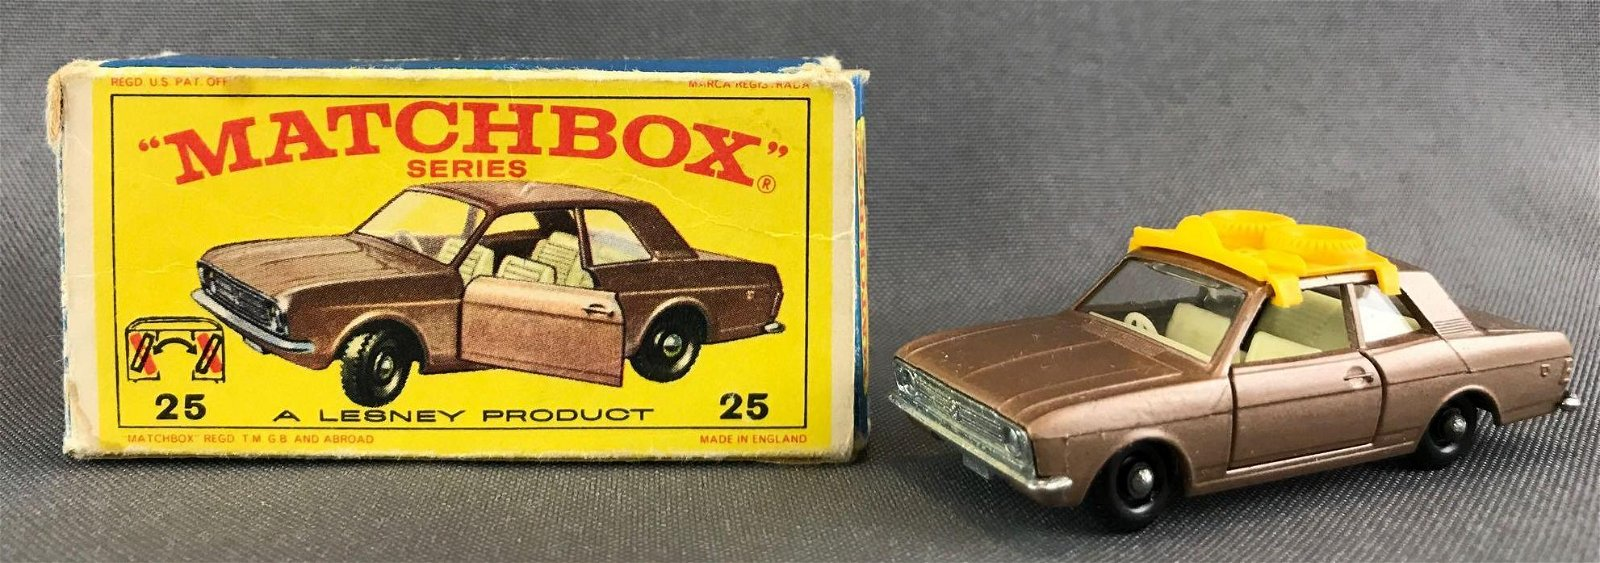 Matchbox No. 25 Ford Cortina Die-Cast Vehicle with